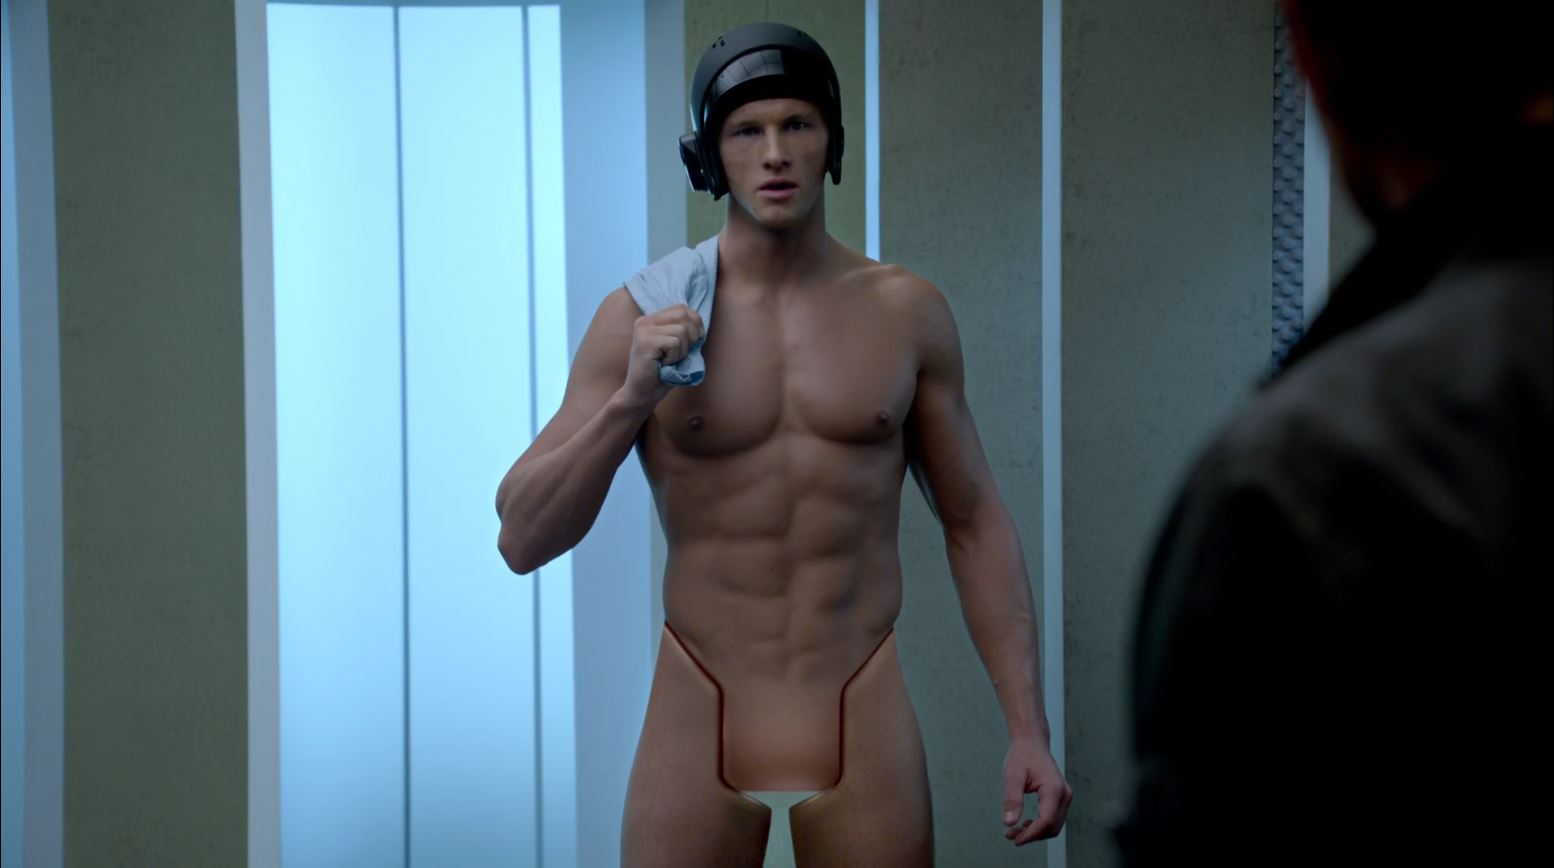 Almost Human - MRX Ken shows he has nothing in his pants